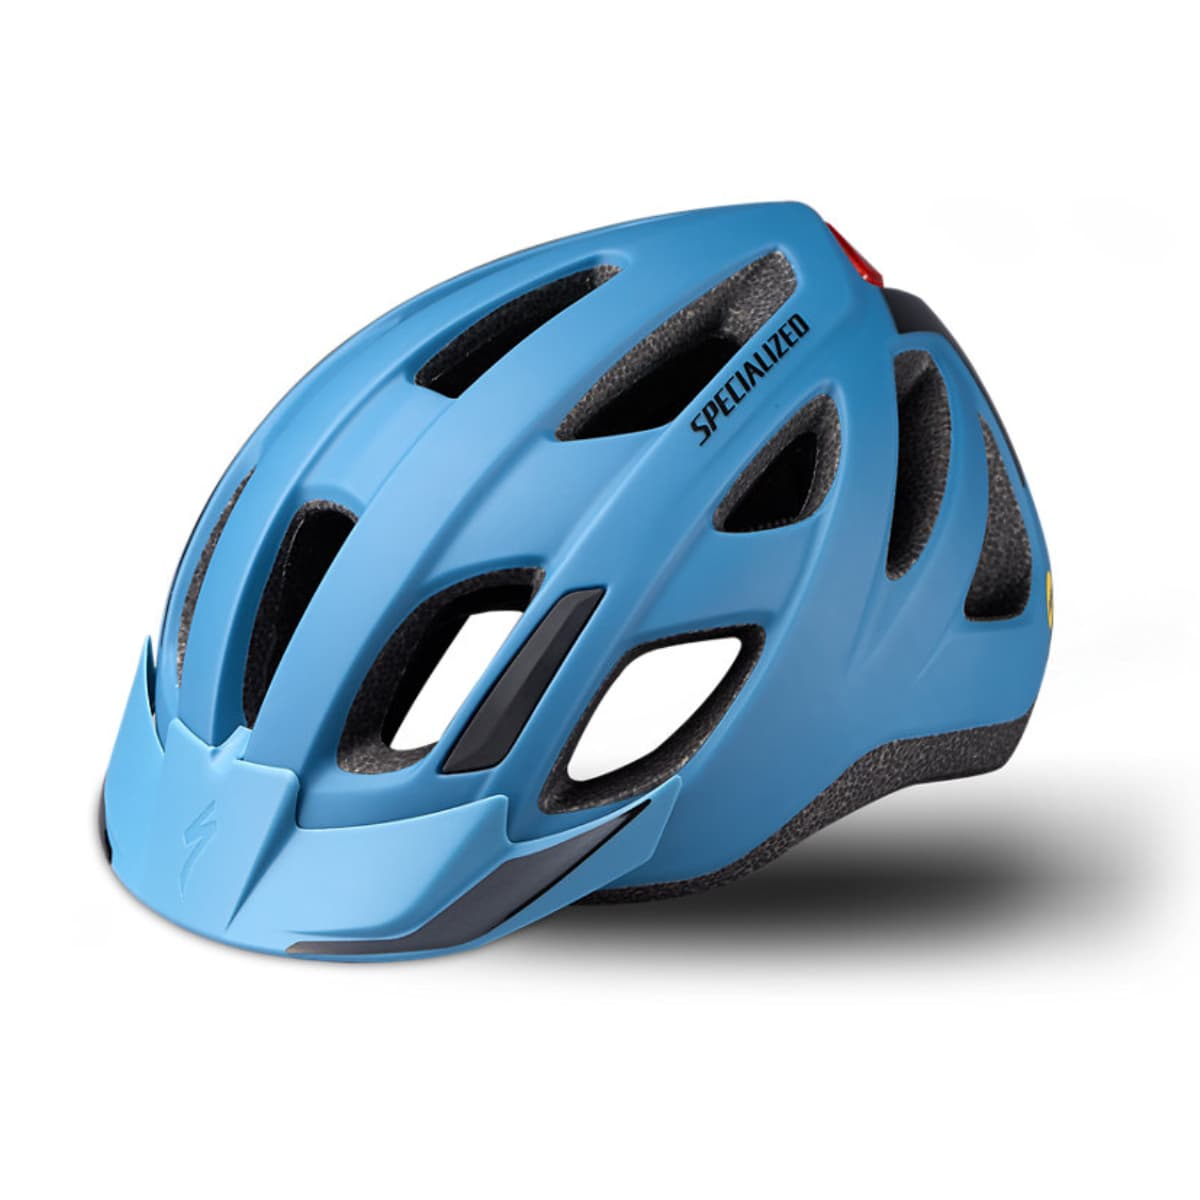 CASQUE SPECIALIZED CENTRO LED MIPS GRIS BLEU